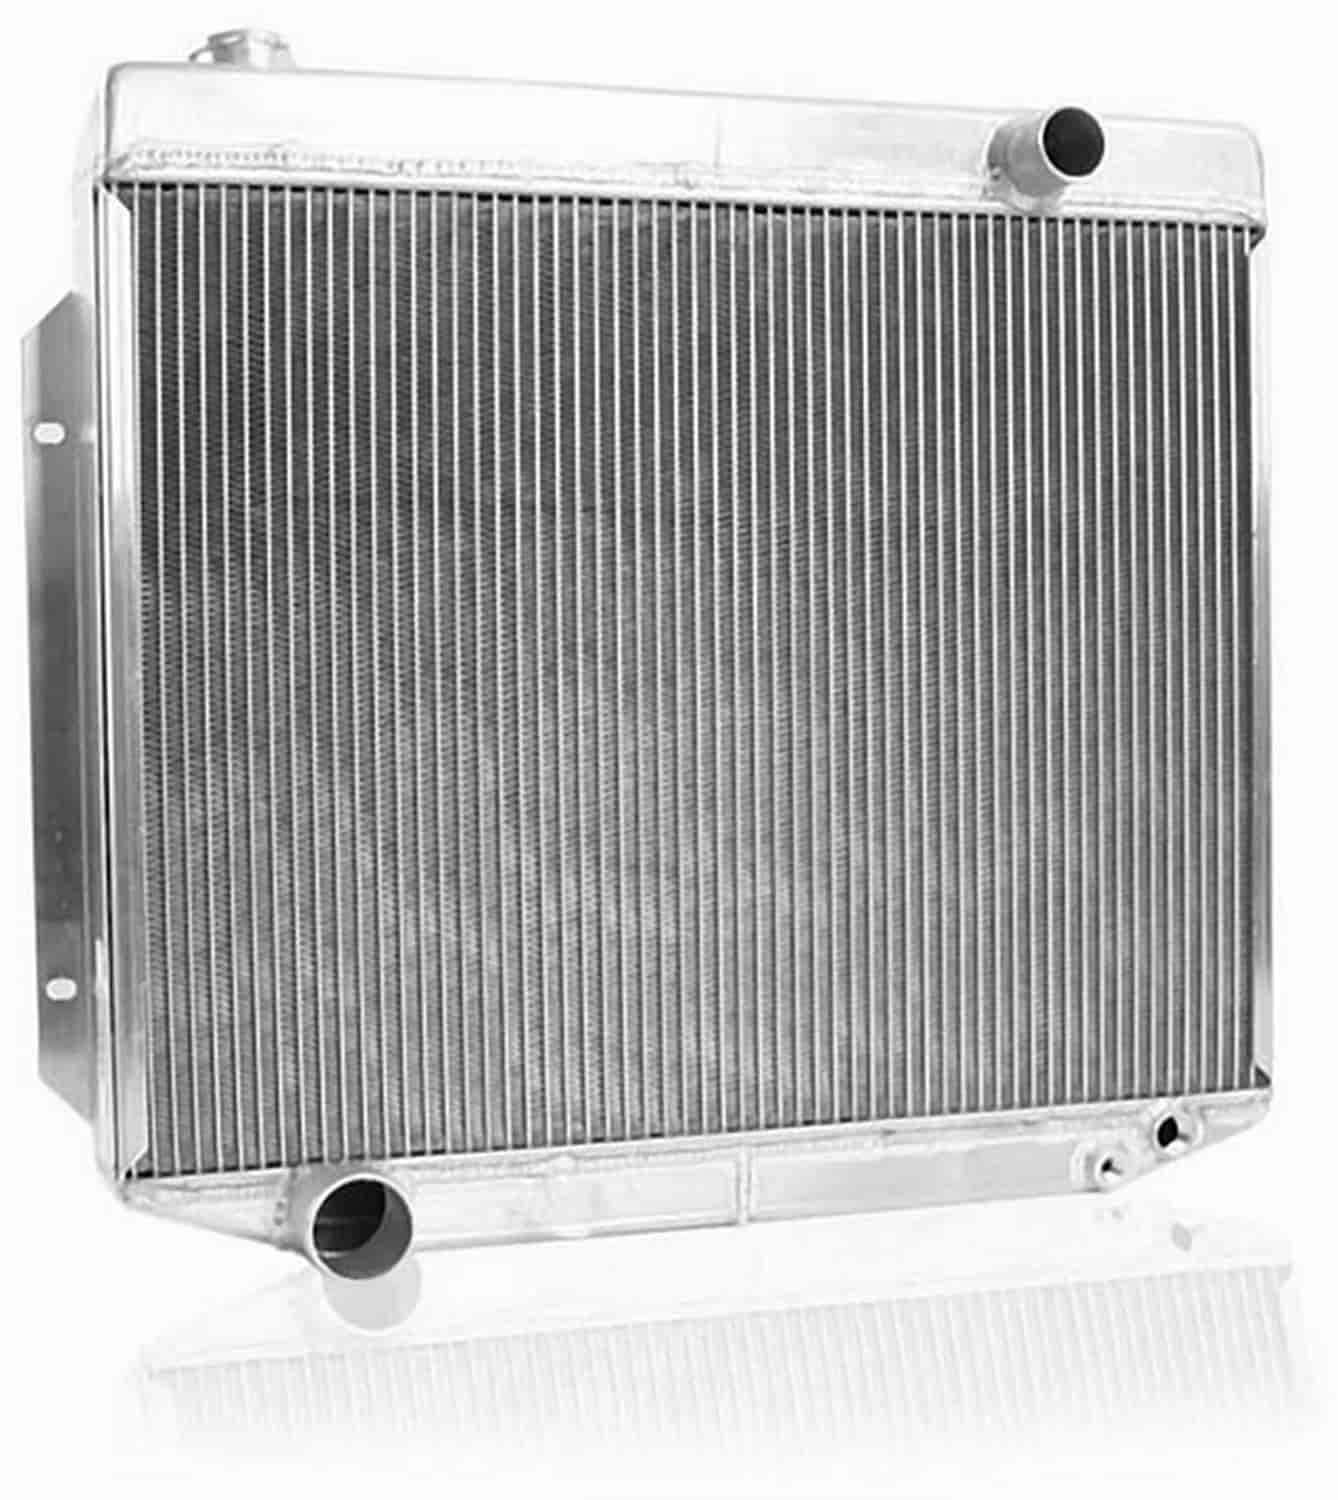 Griffin Radiators 7 00131 Exactfit Radiator For 1957 1959 Fairlane Fuel Filters